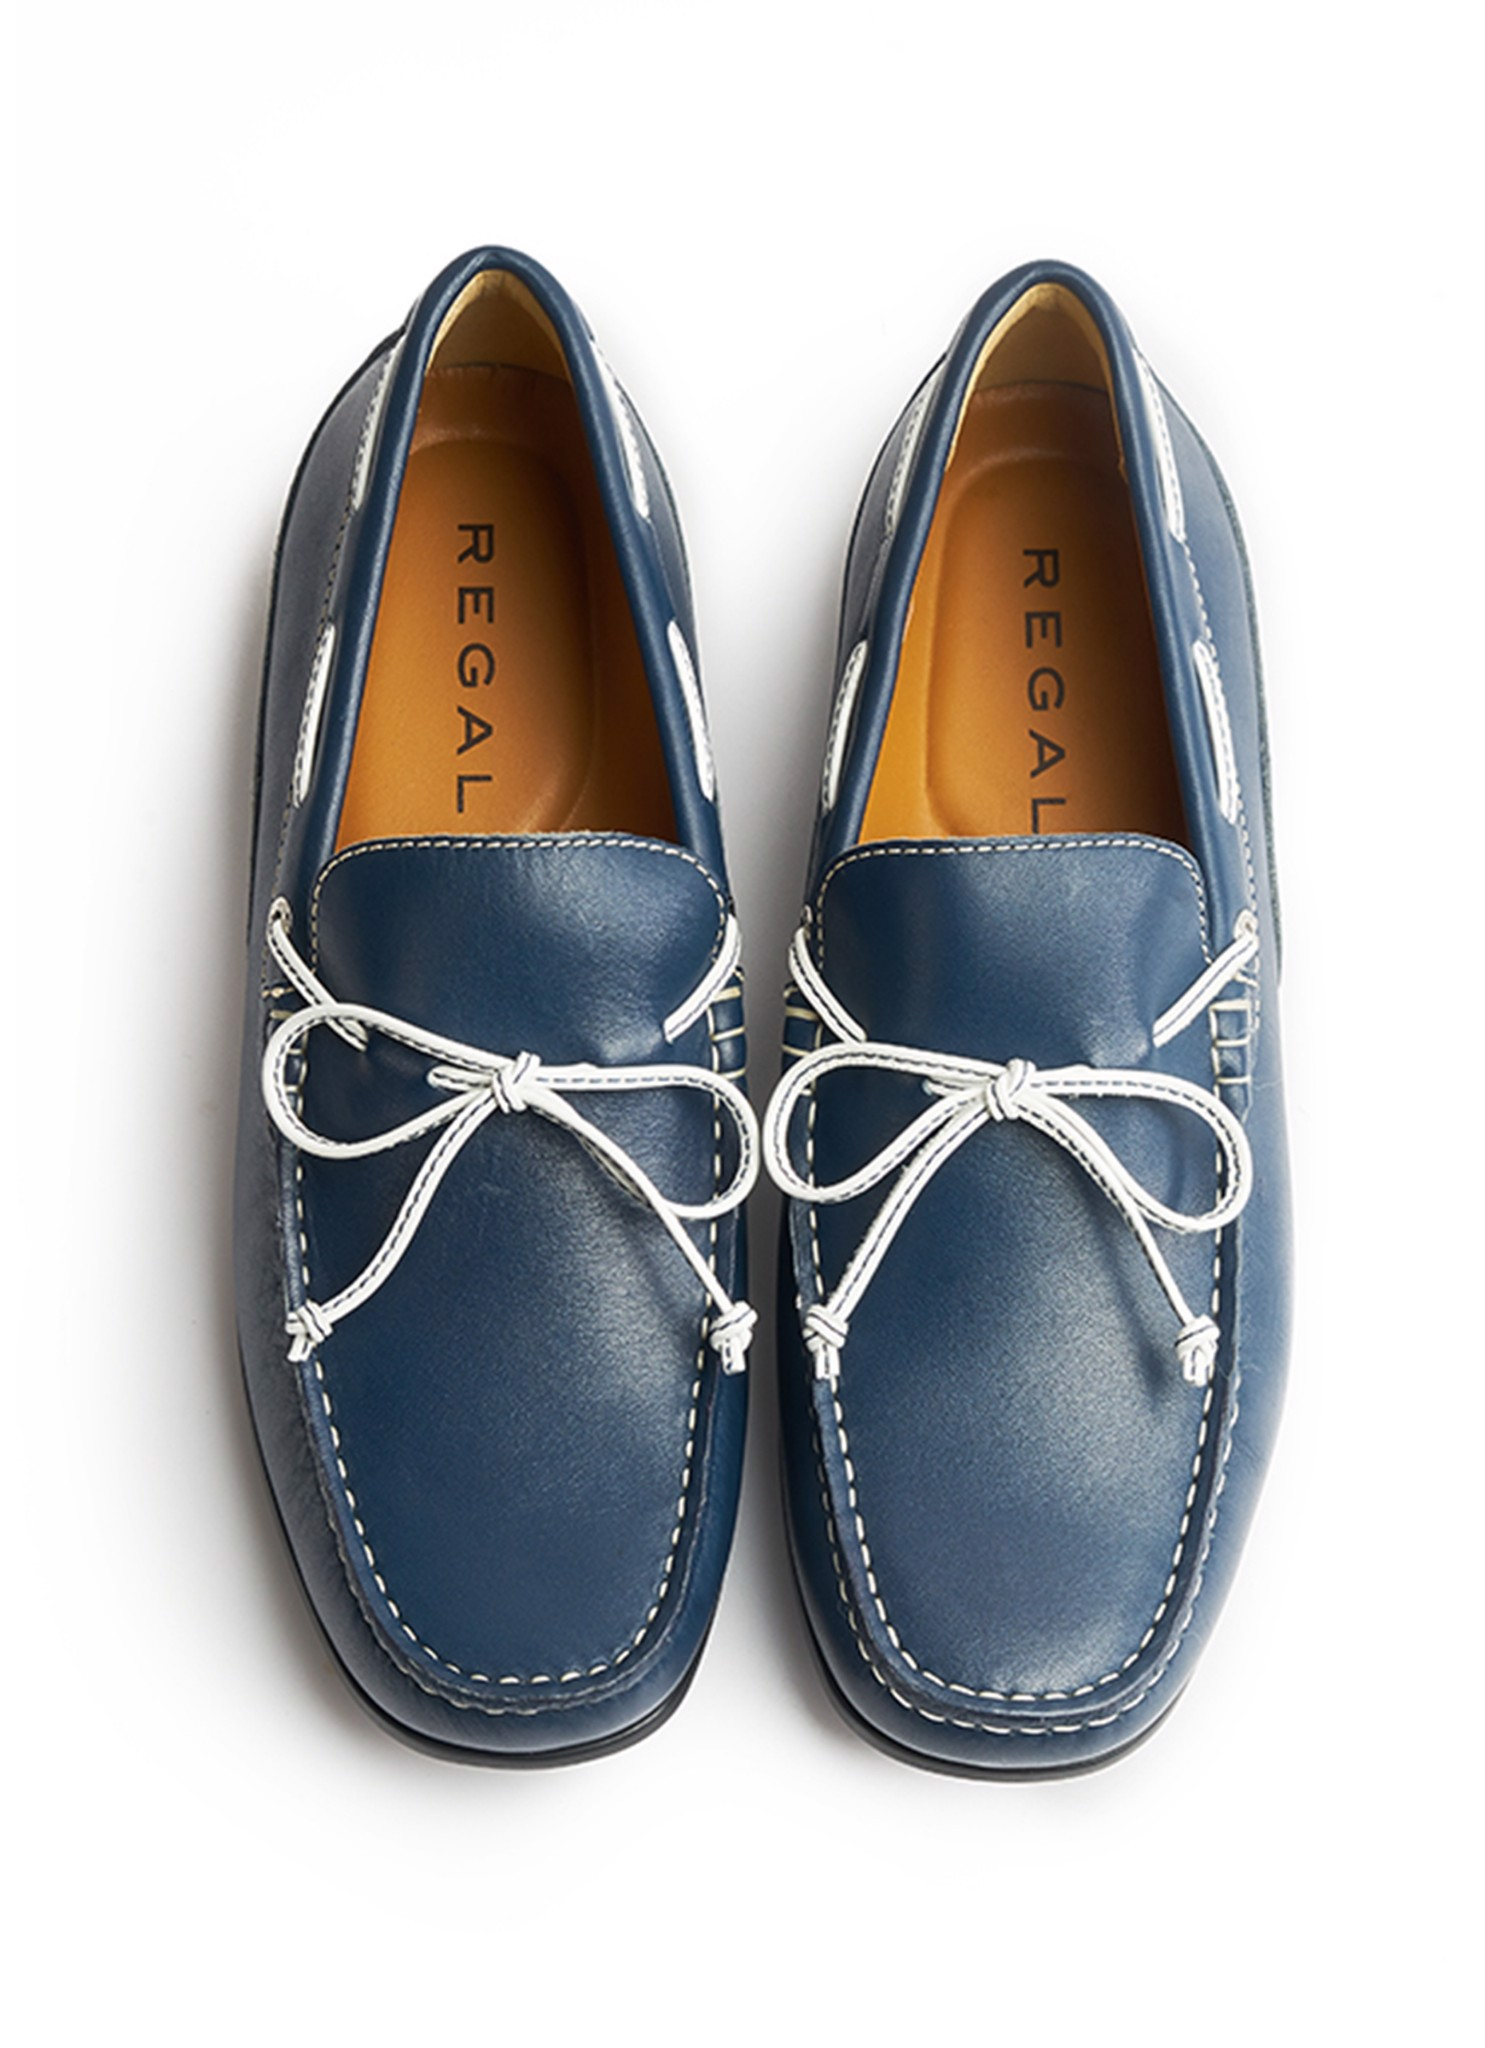 REGAL Casual Loafers Navy